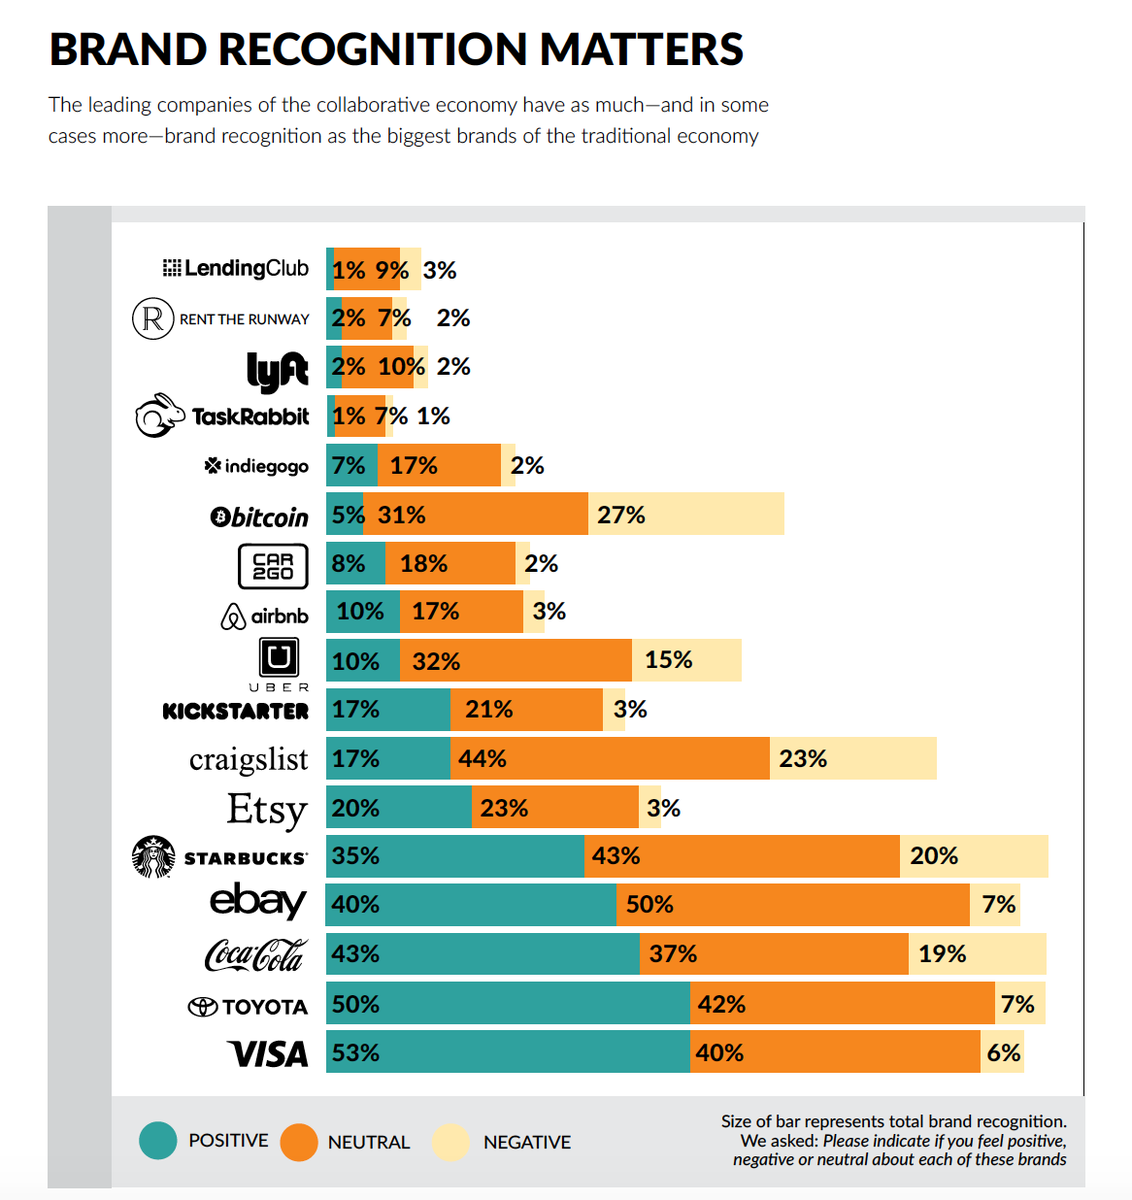 Why a Strong Brand Matters in the Collaborative Economy - https://t.co/UdUbnMW3Pf  via @jowyang https://t.co/FWONpkwZnW